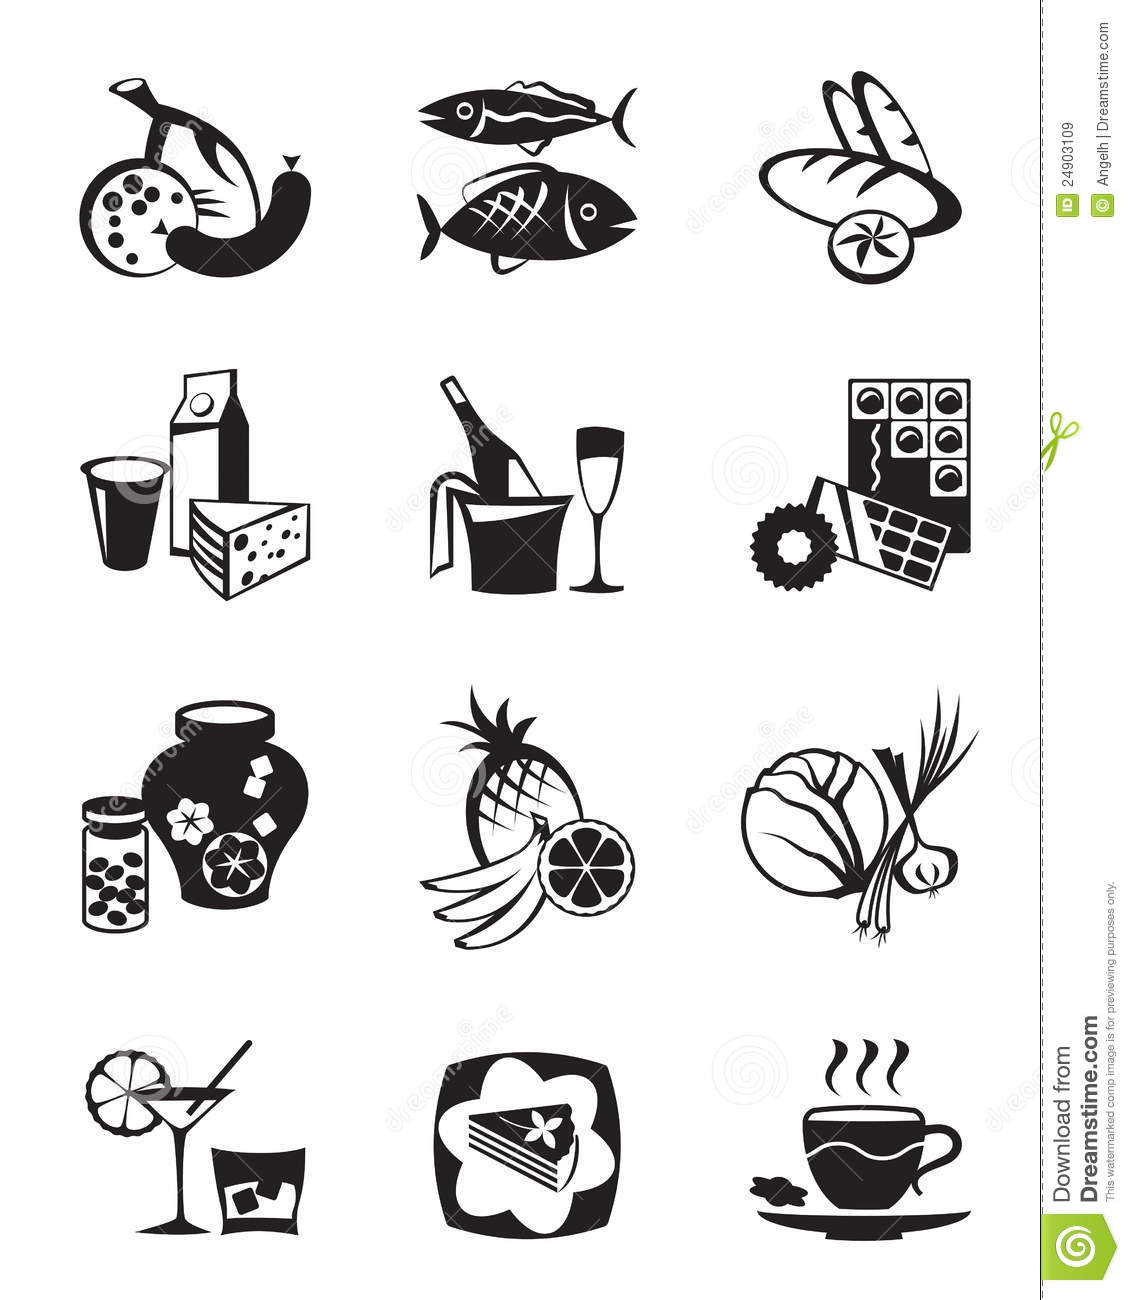 Grocery store icons se...